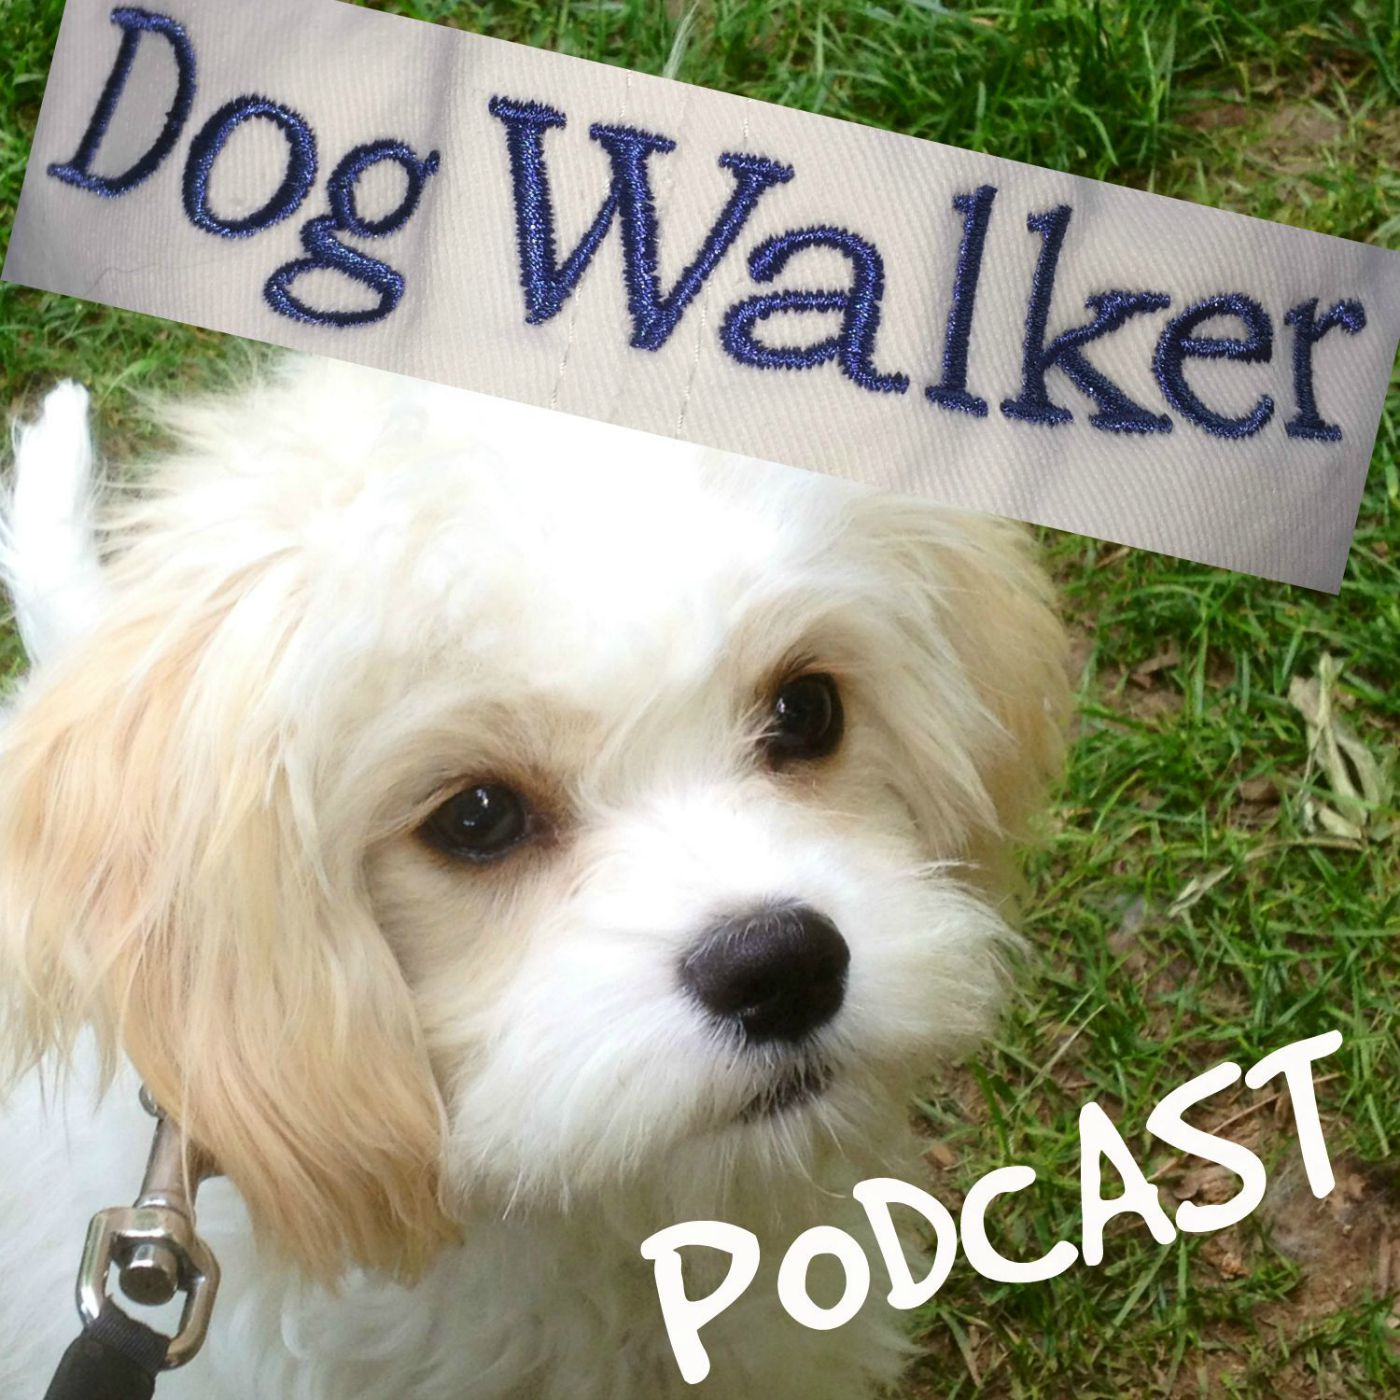 How To Start and Operate a Dog Walking and Pet Sitting Business show art